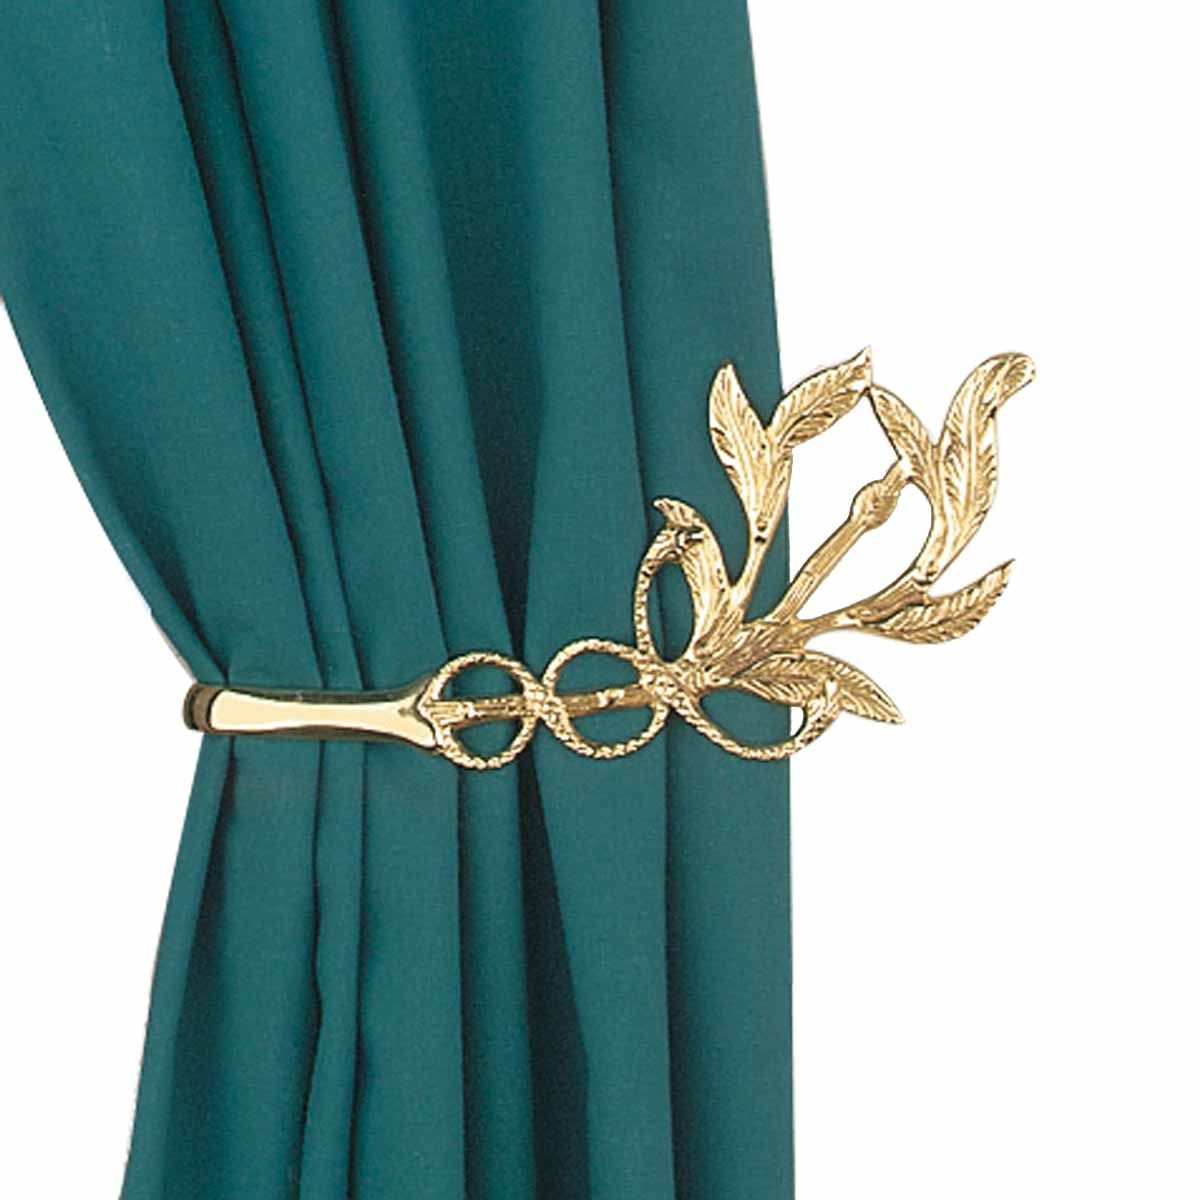 Vintage Bright Brass Pair Vine Curtain Tie Back Holders One Up One